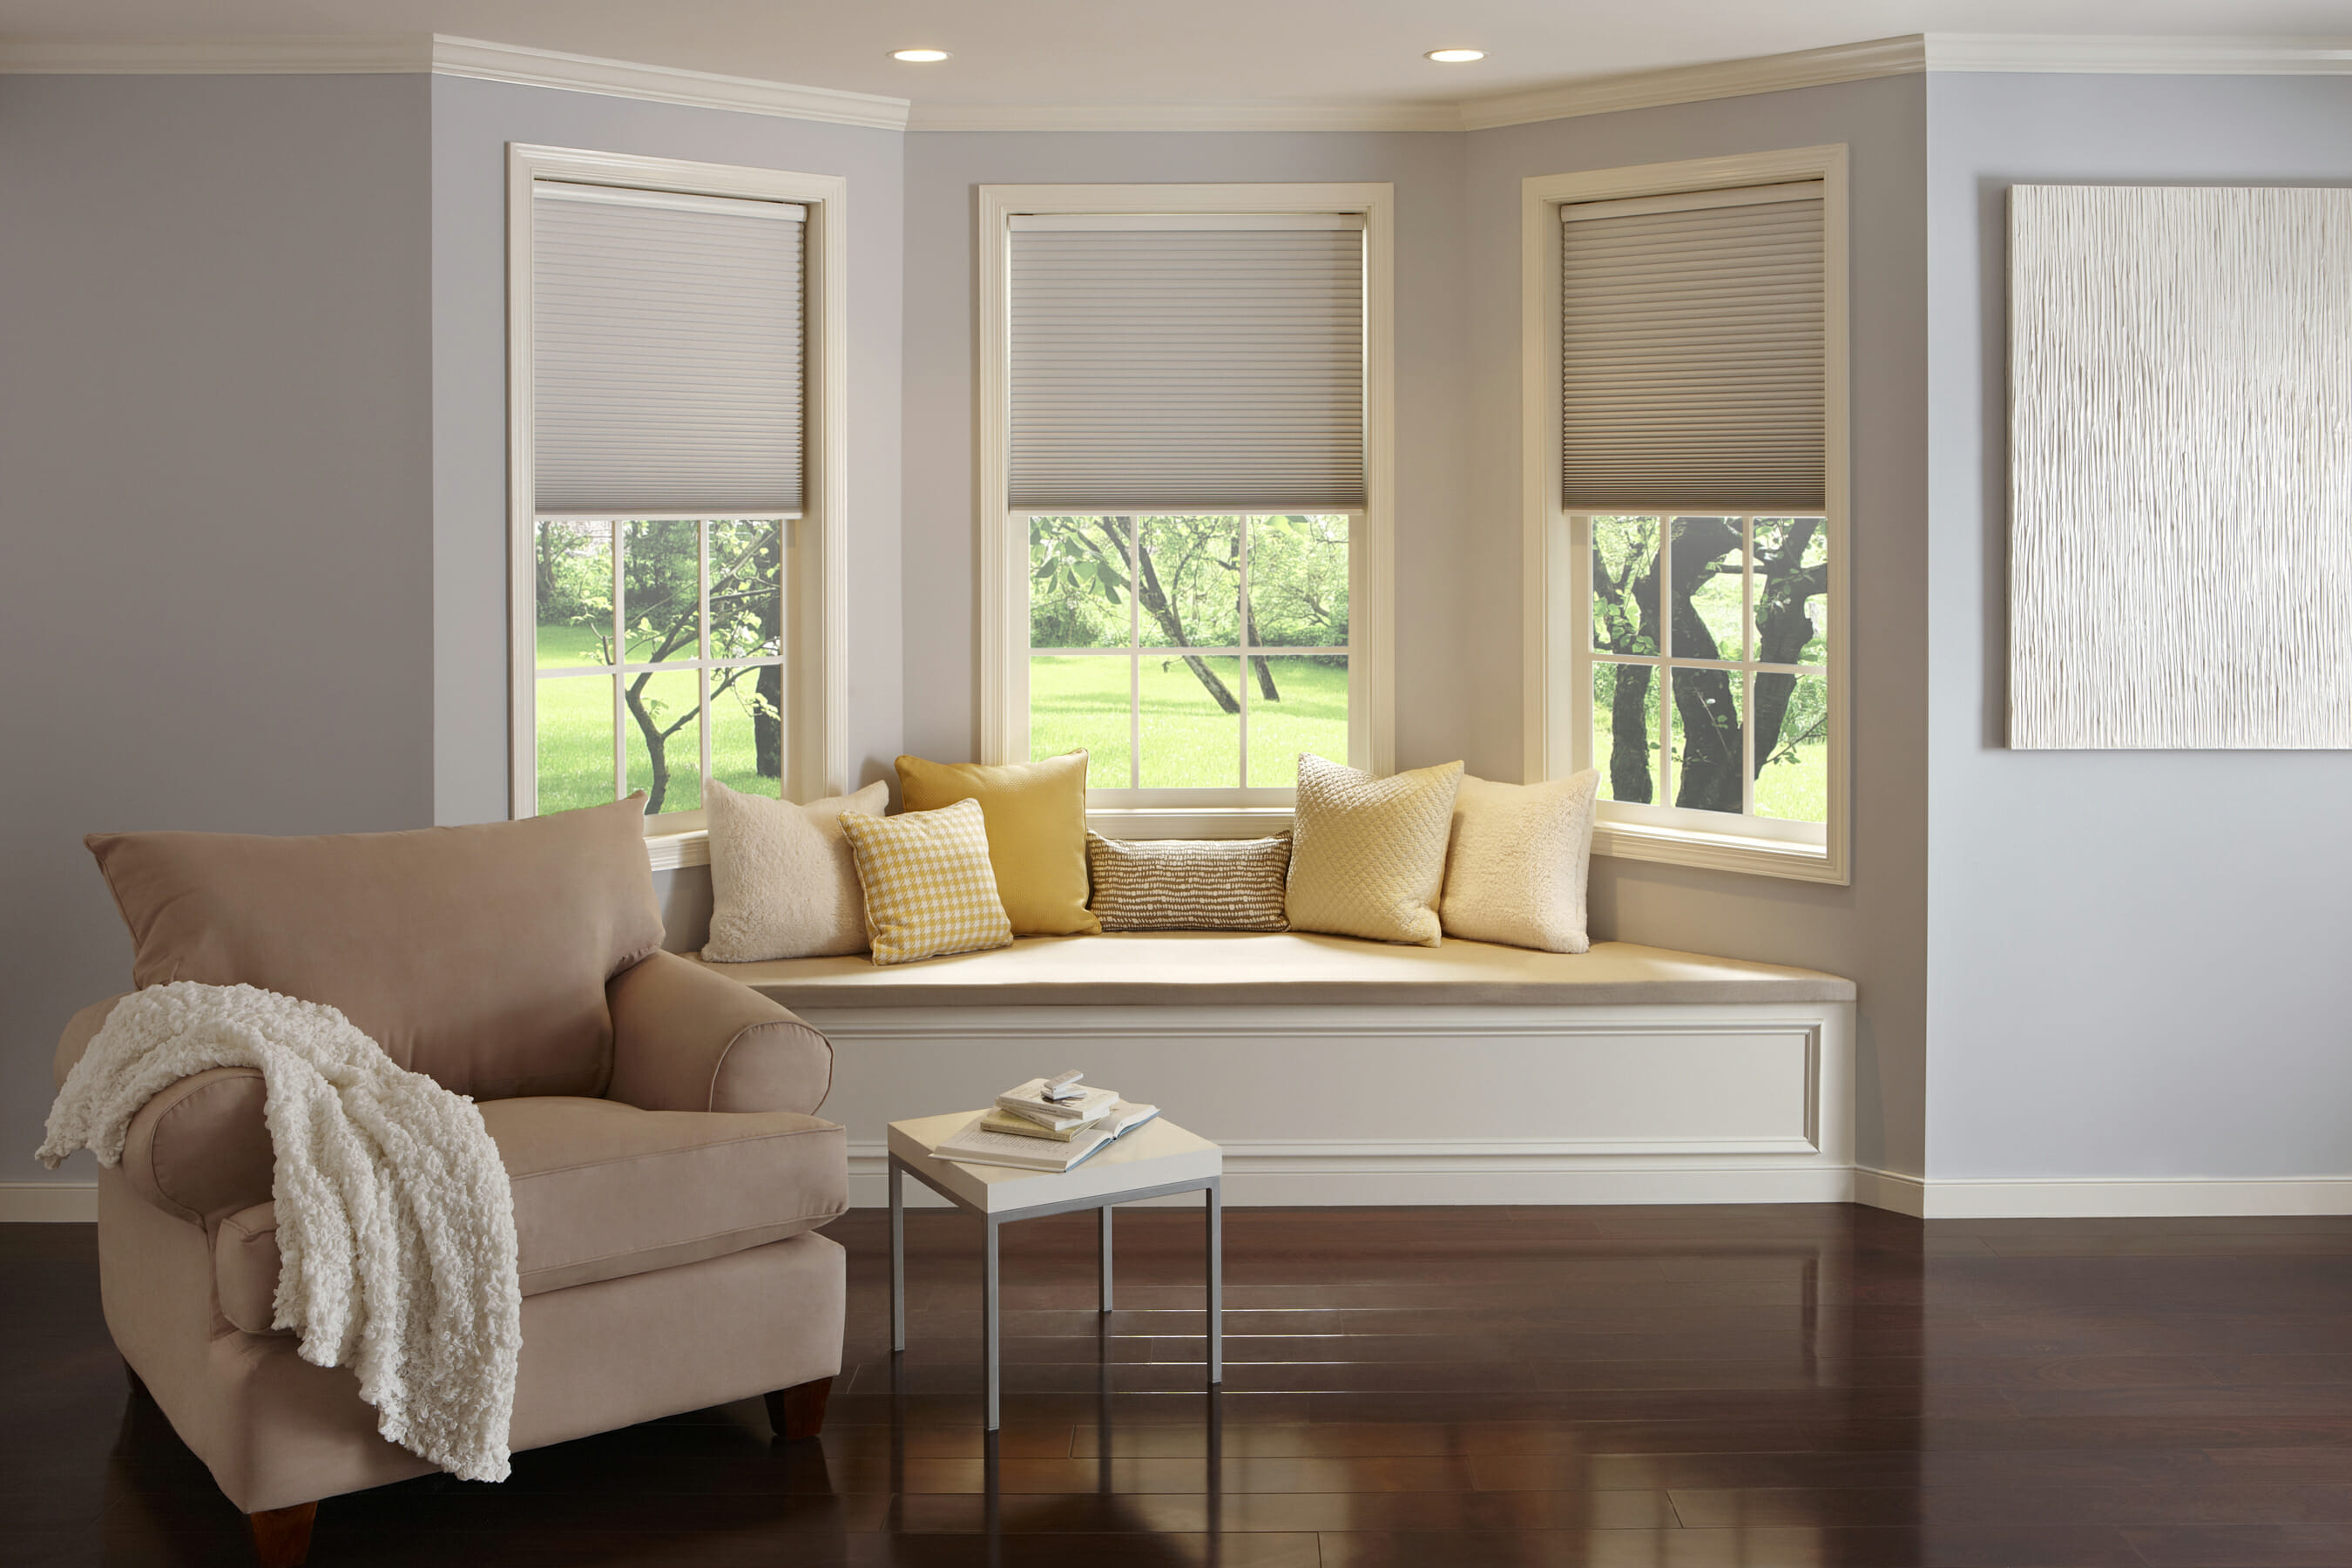 Cellular shades 3 blind mice window coverings for Living room window blinds